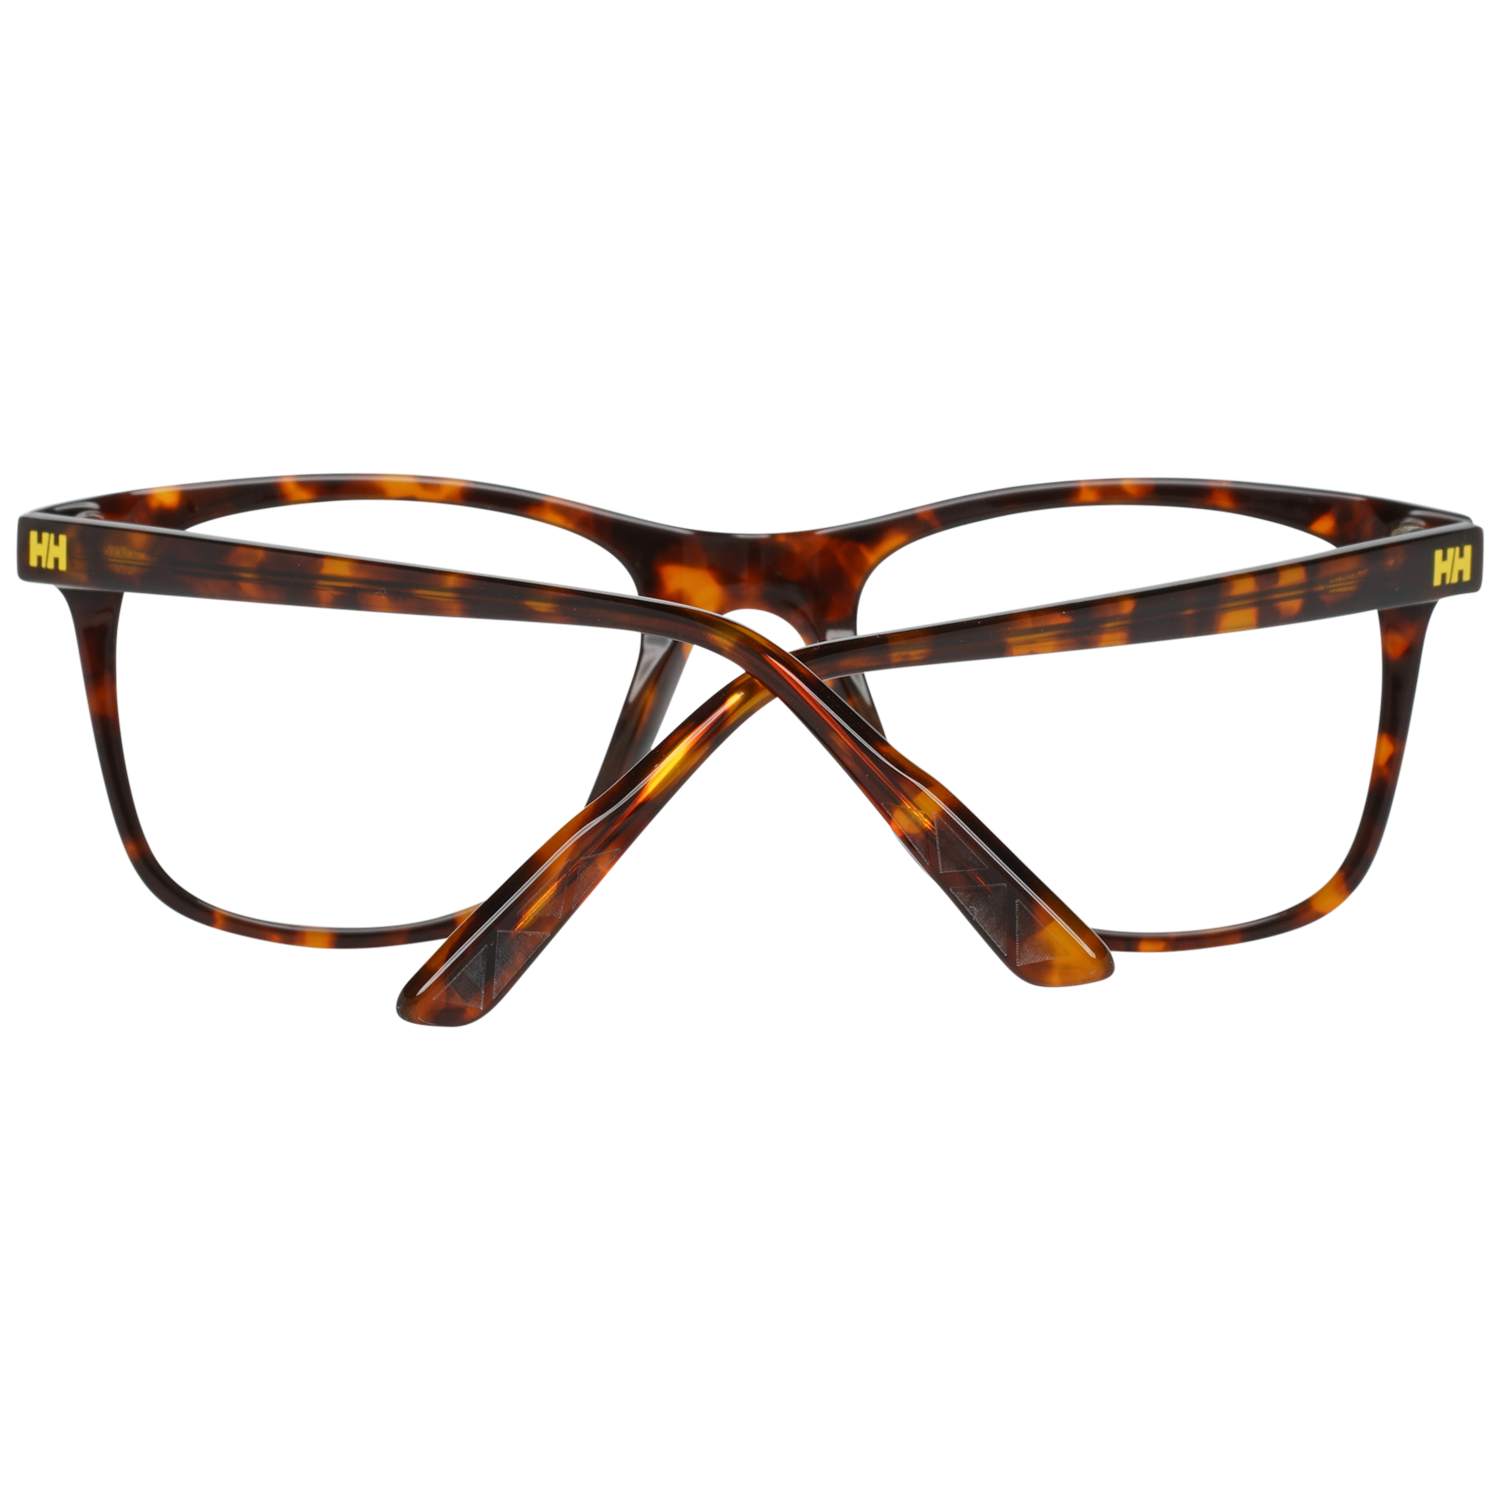 Helly Hansen Optical Frame HH1004 C02 52 Unisex Brown